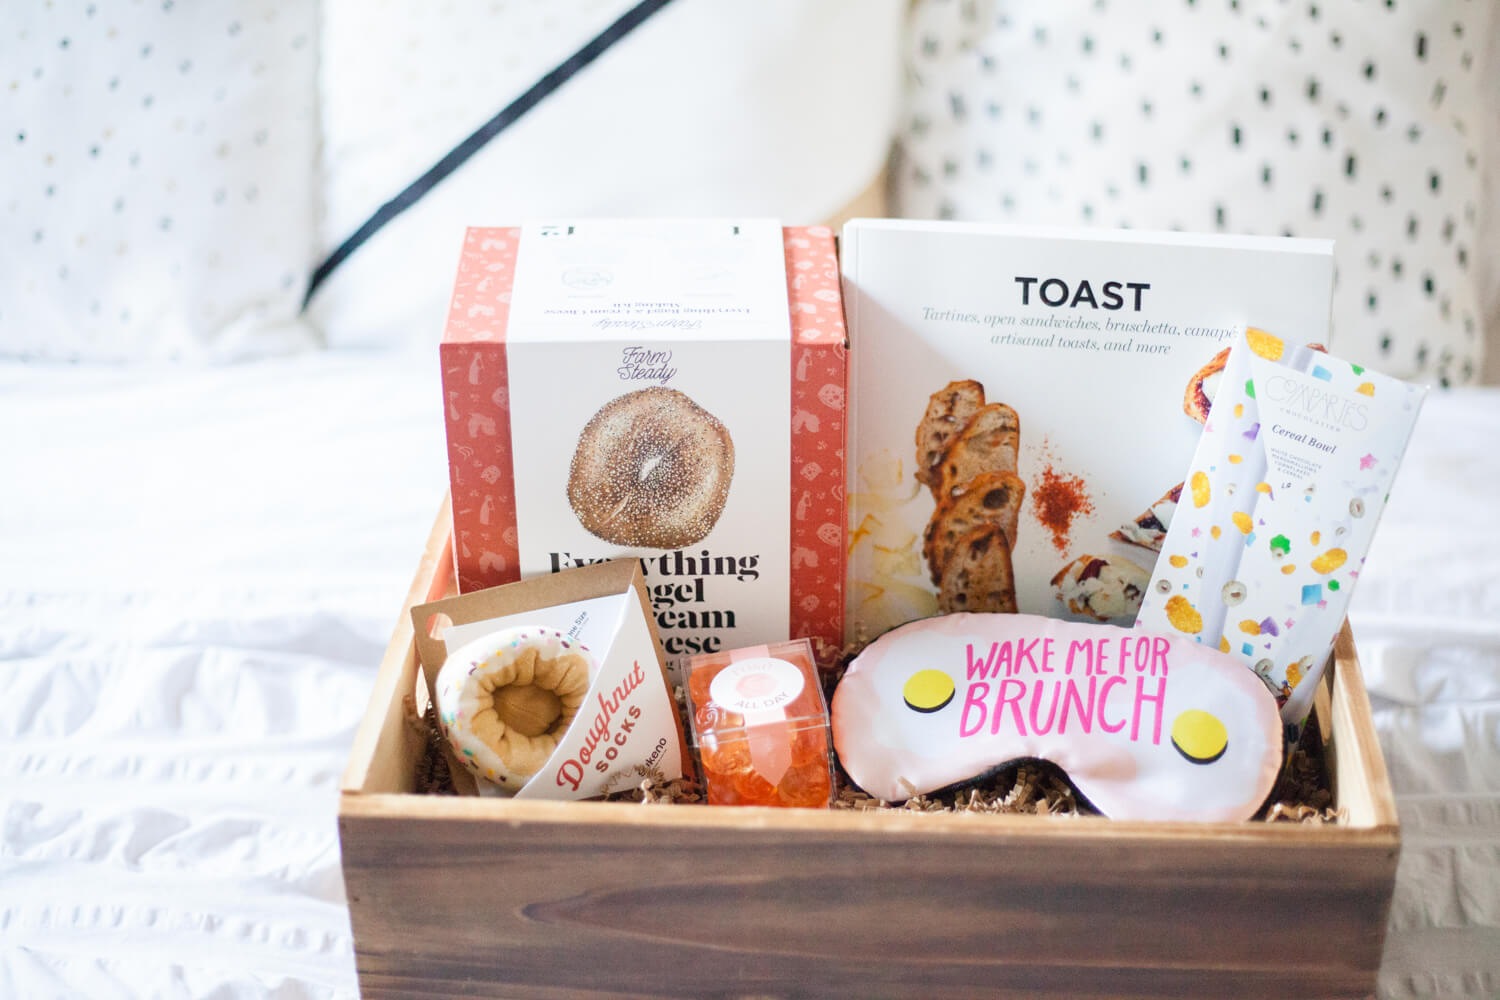 Brunch-themed adult gift basket idea